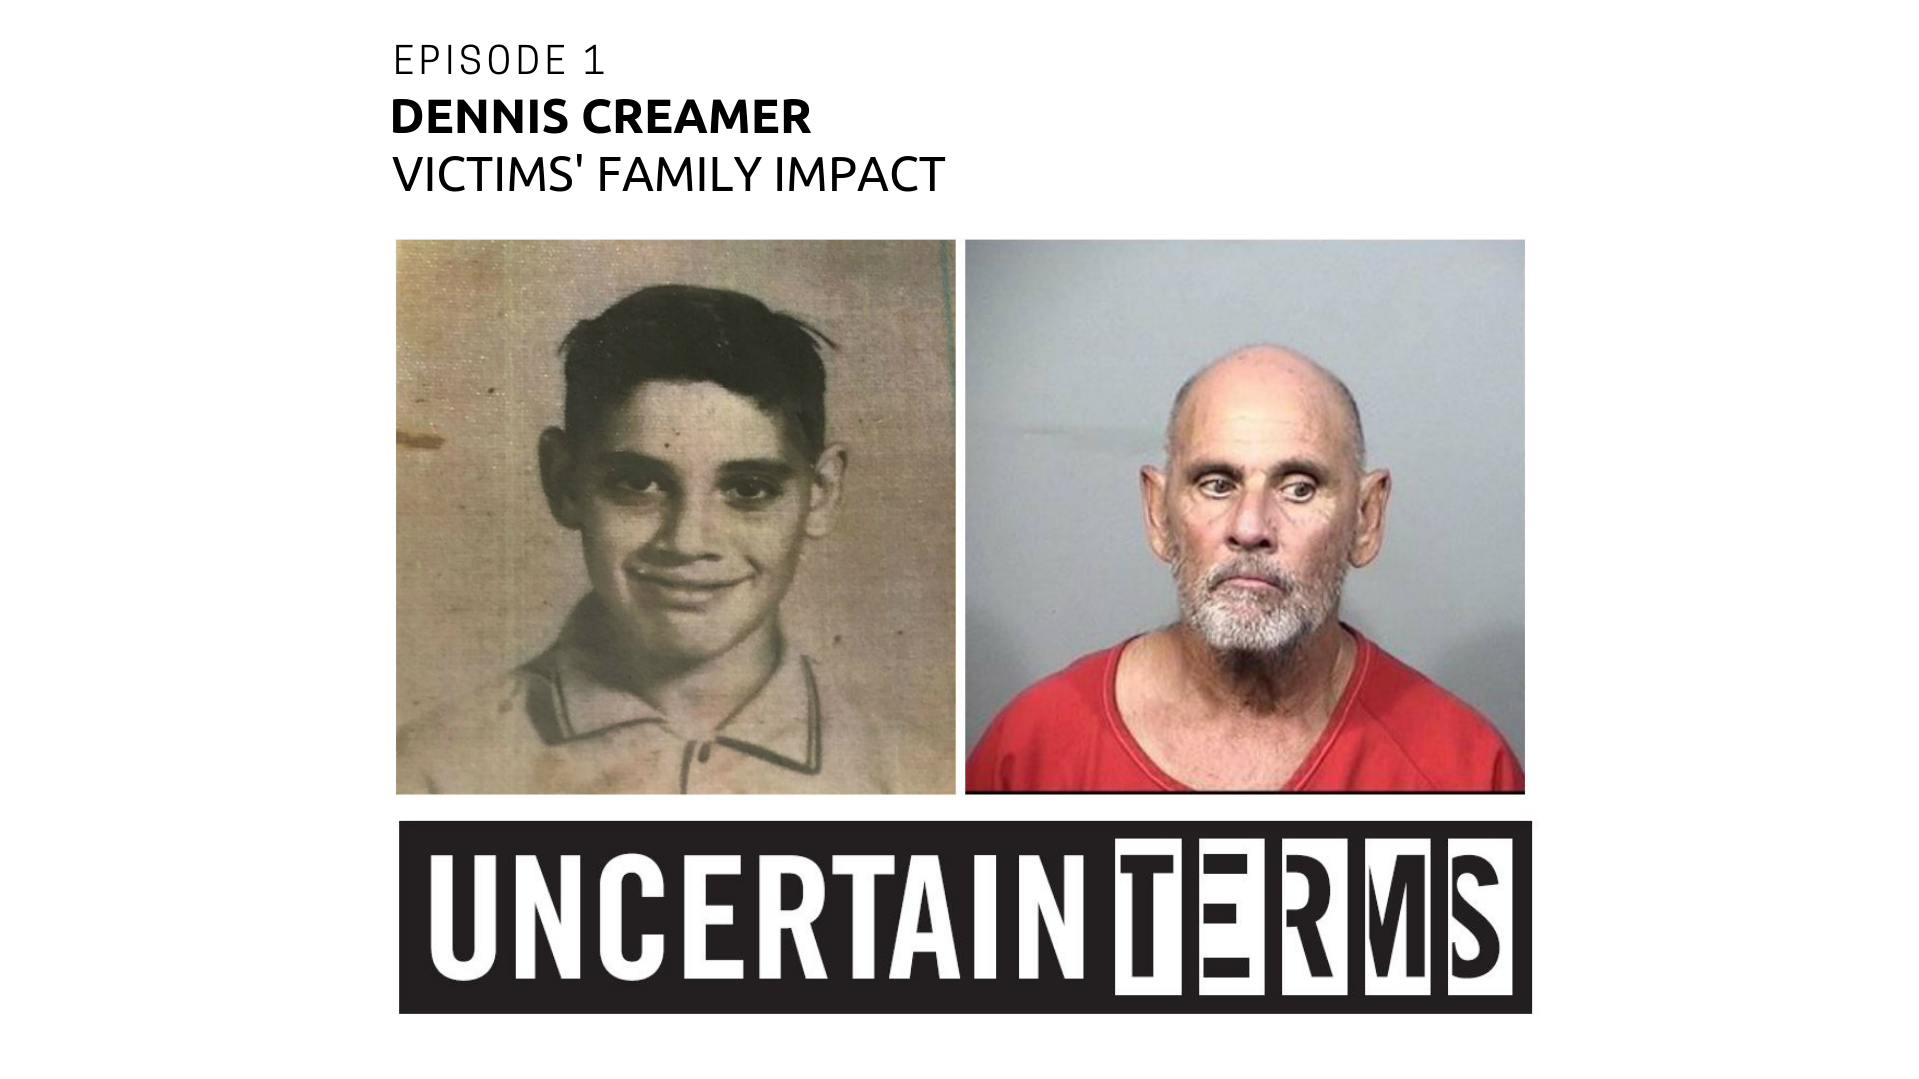 Uncertain Terms podcast | Episode 1: Dennis Creamer and victims' family impact